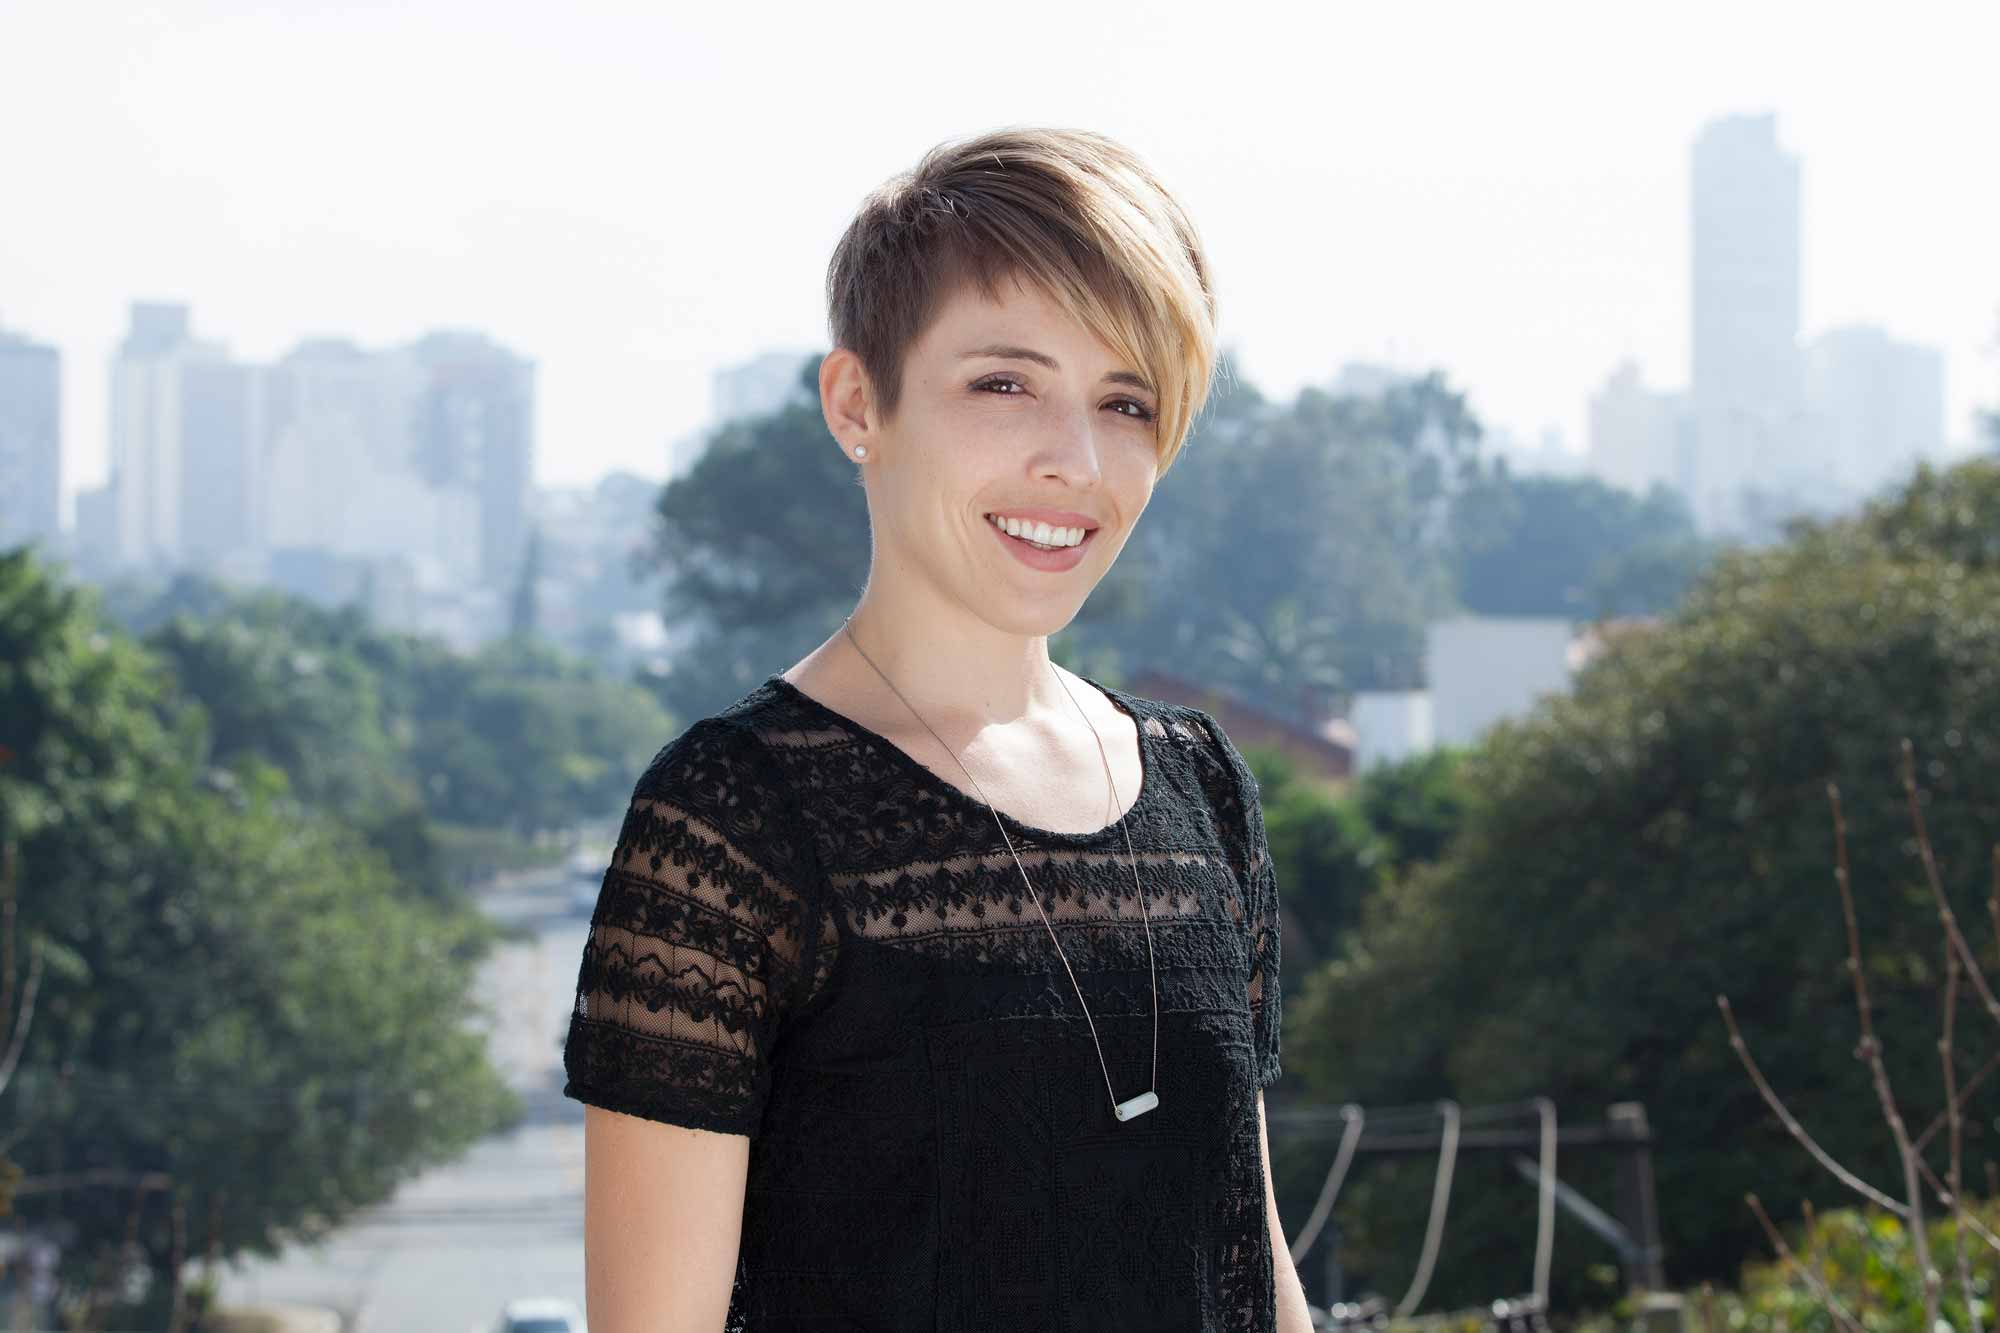 Hairstyles for round faces: Woman with short asymmetric fade pixie cut